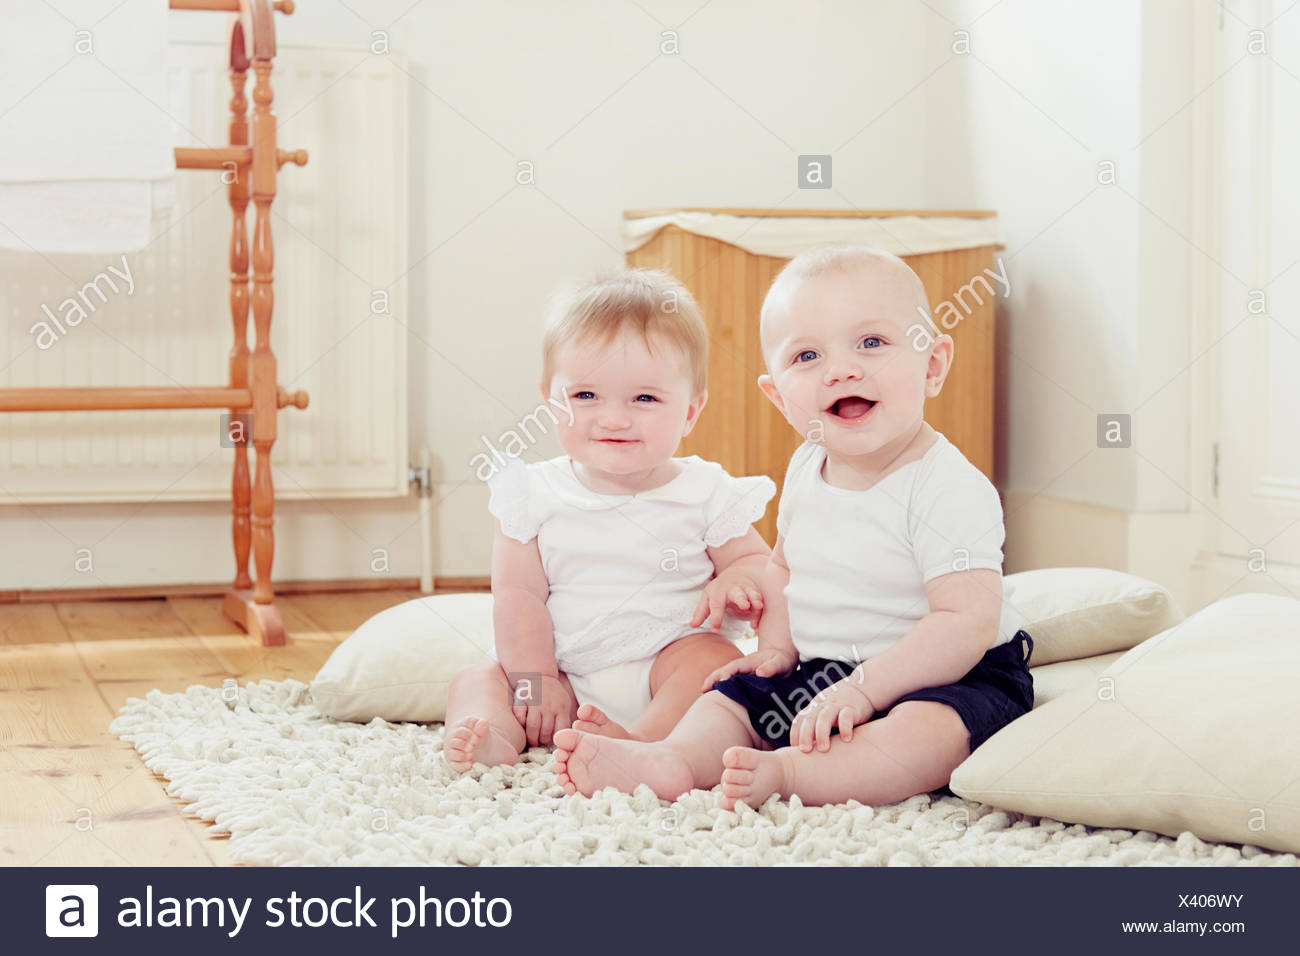 Portrait of smiling baby girl and baby boy sitting on rug - Stock Image